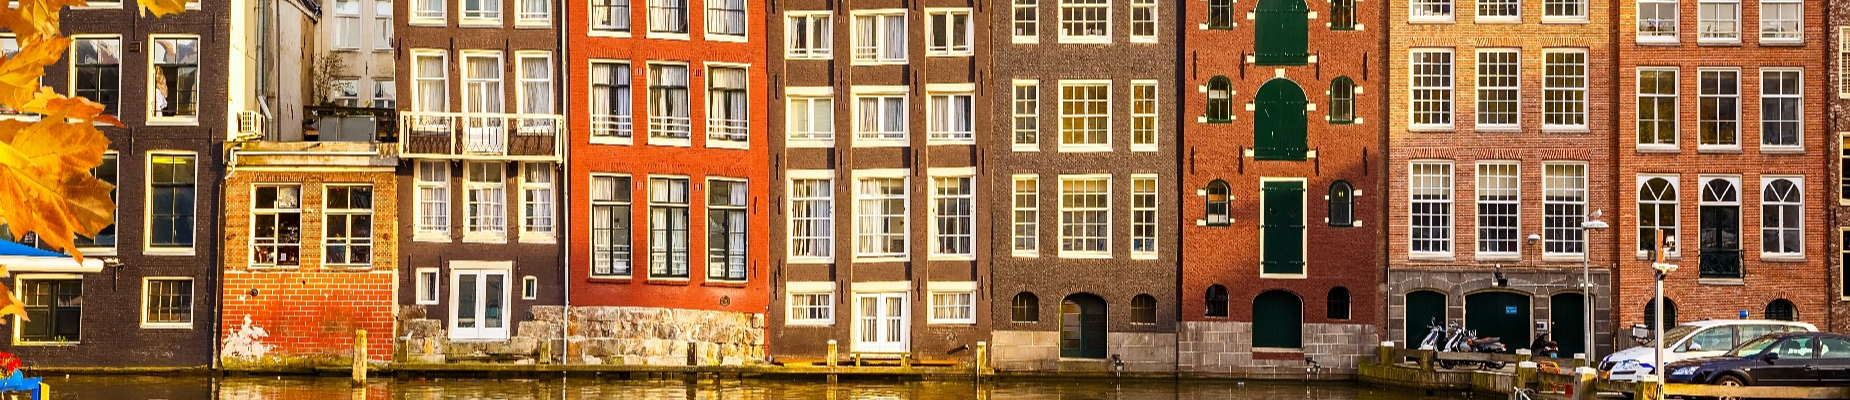 Buildings near water in Amsterdam